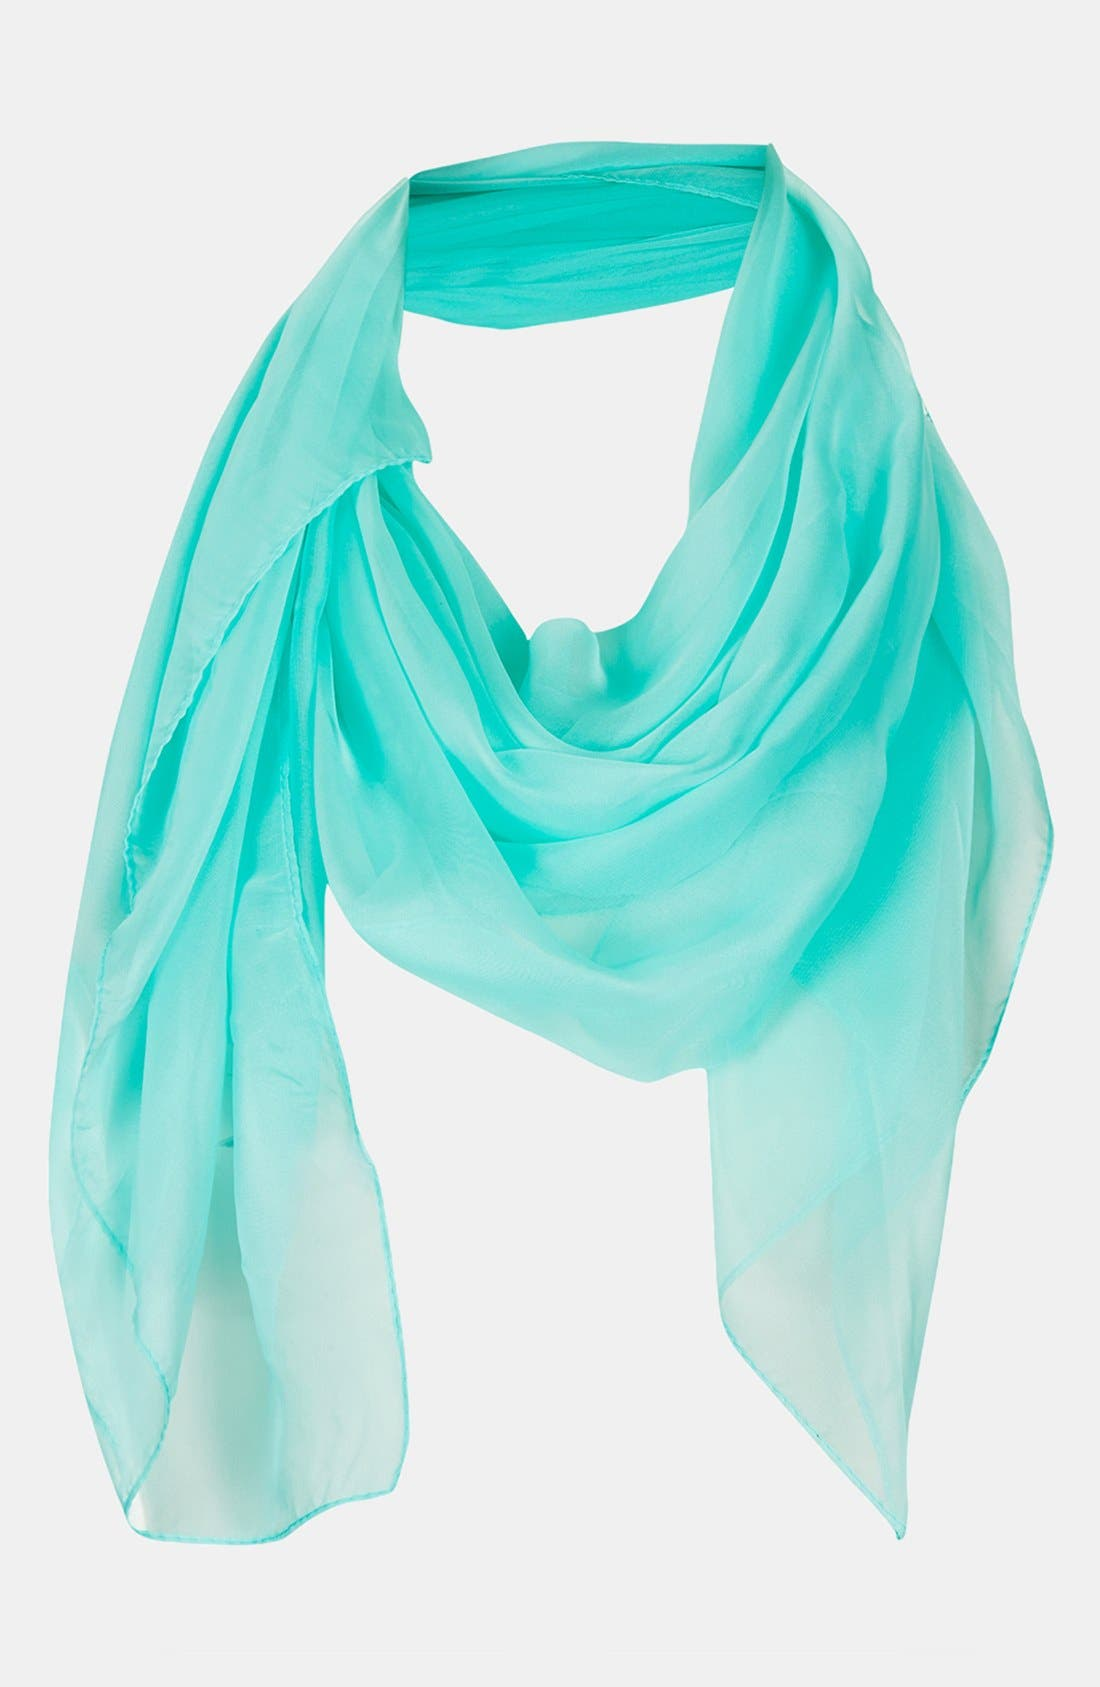 Alternate Image 1 Selected - Topshop Chiffon Square Scarf